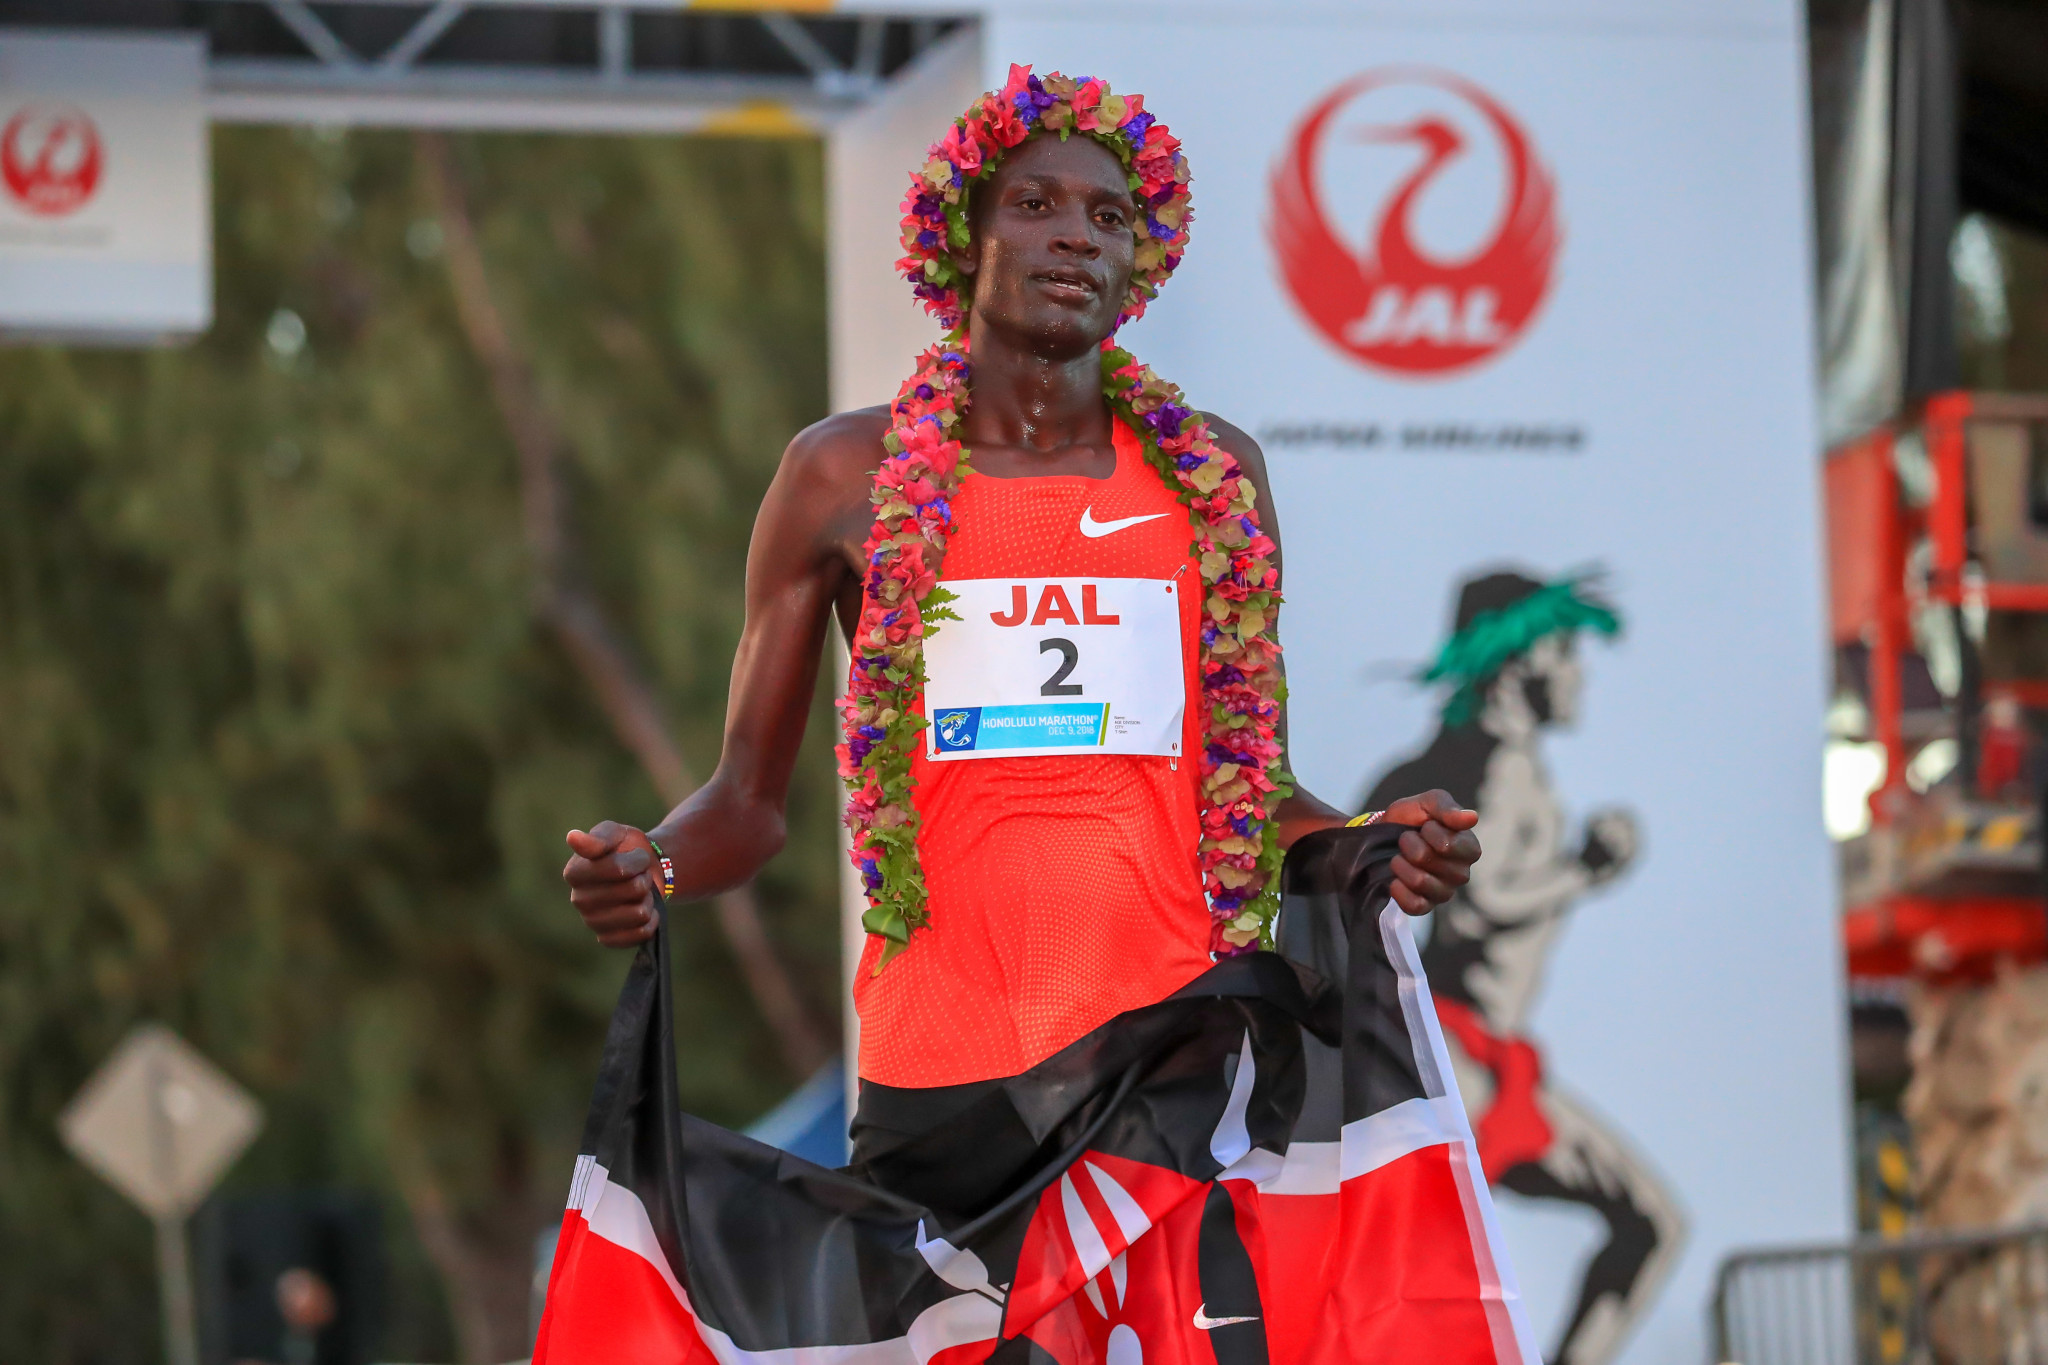 Ekiru makes history as Kenya rocket up medal standings on last day of athletics at African Games